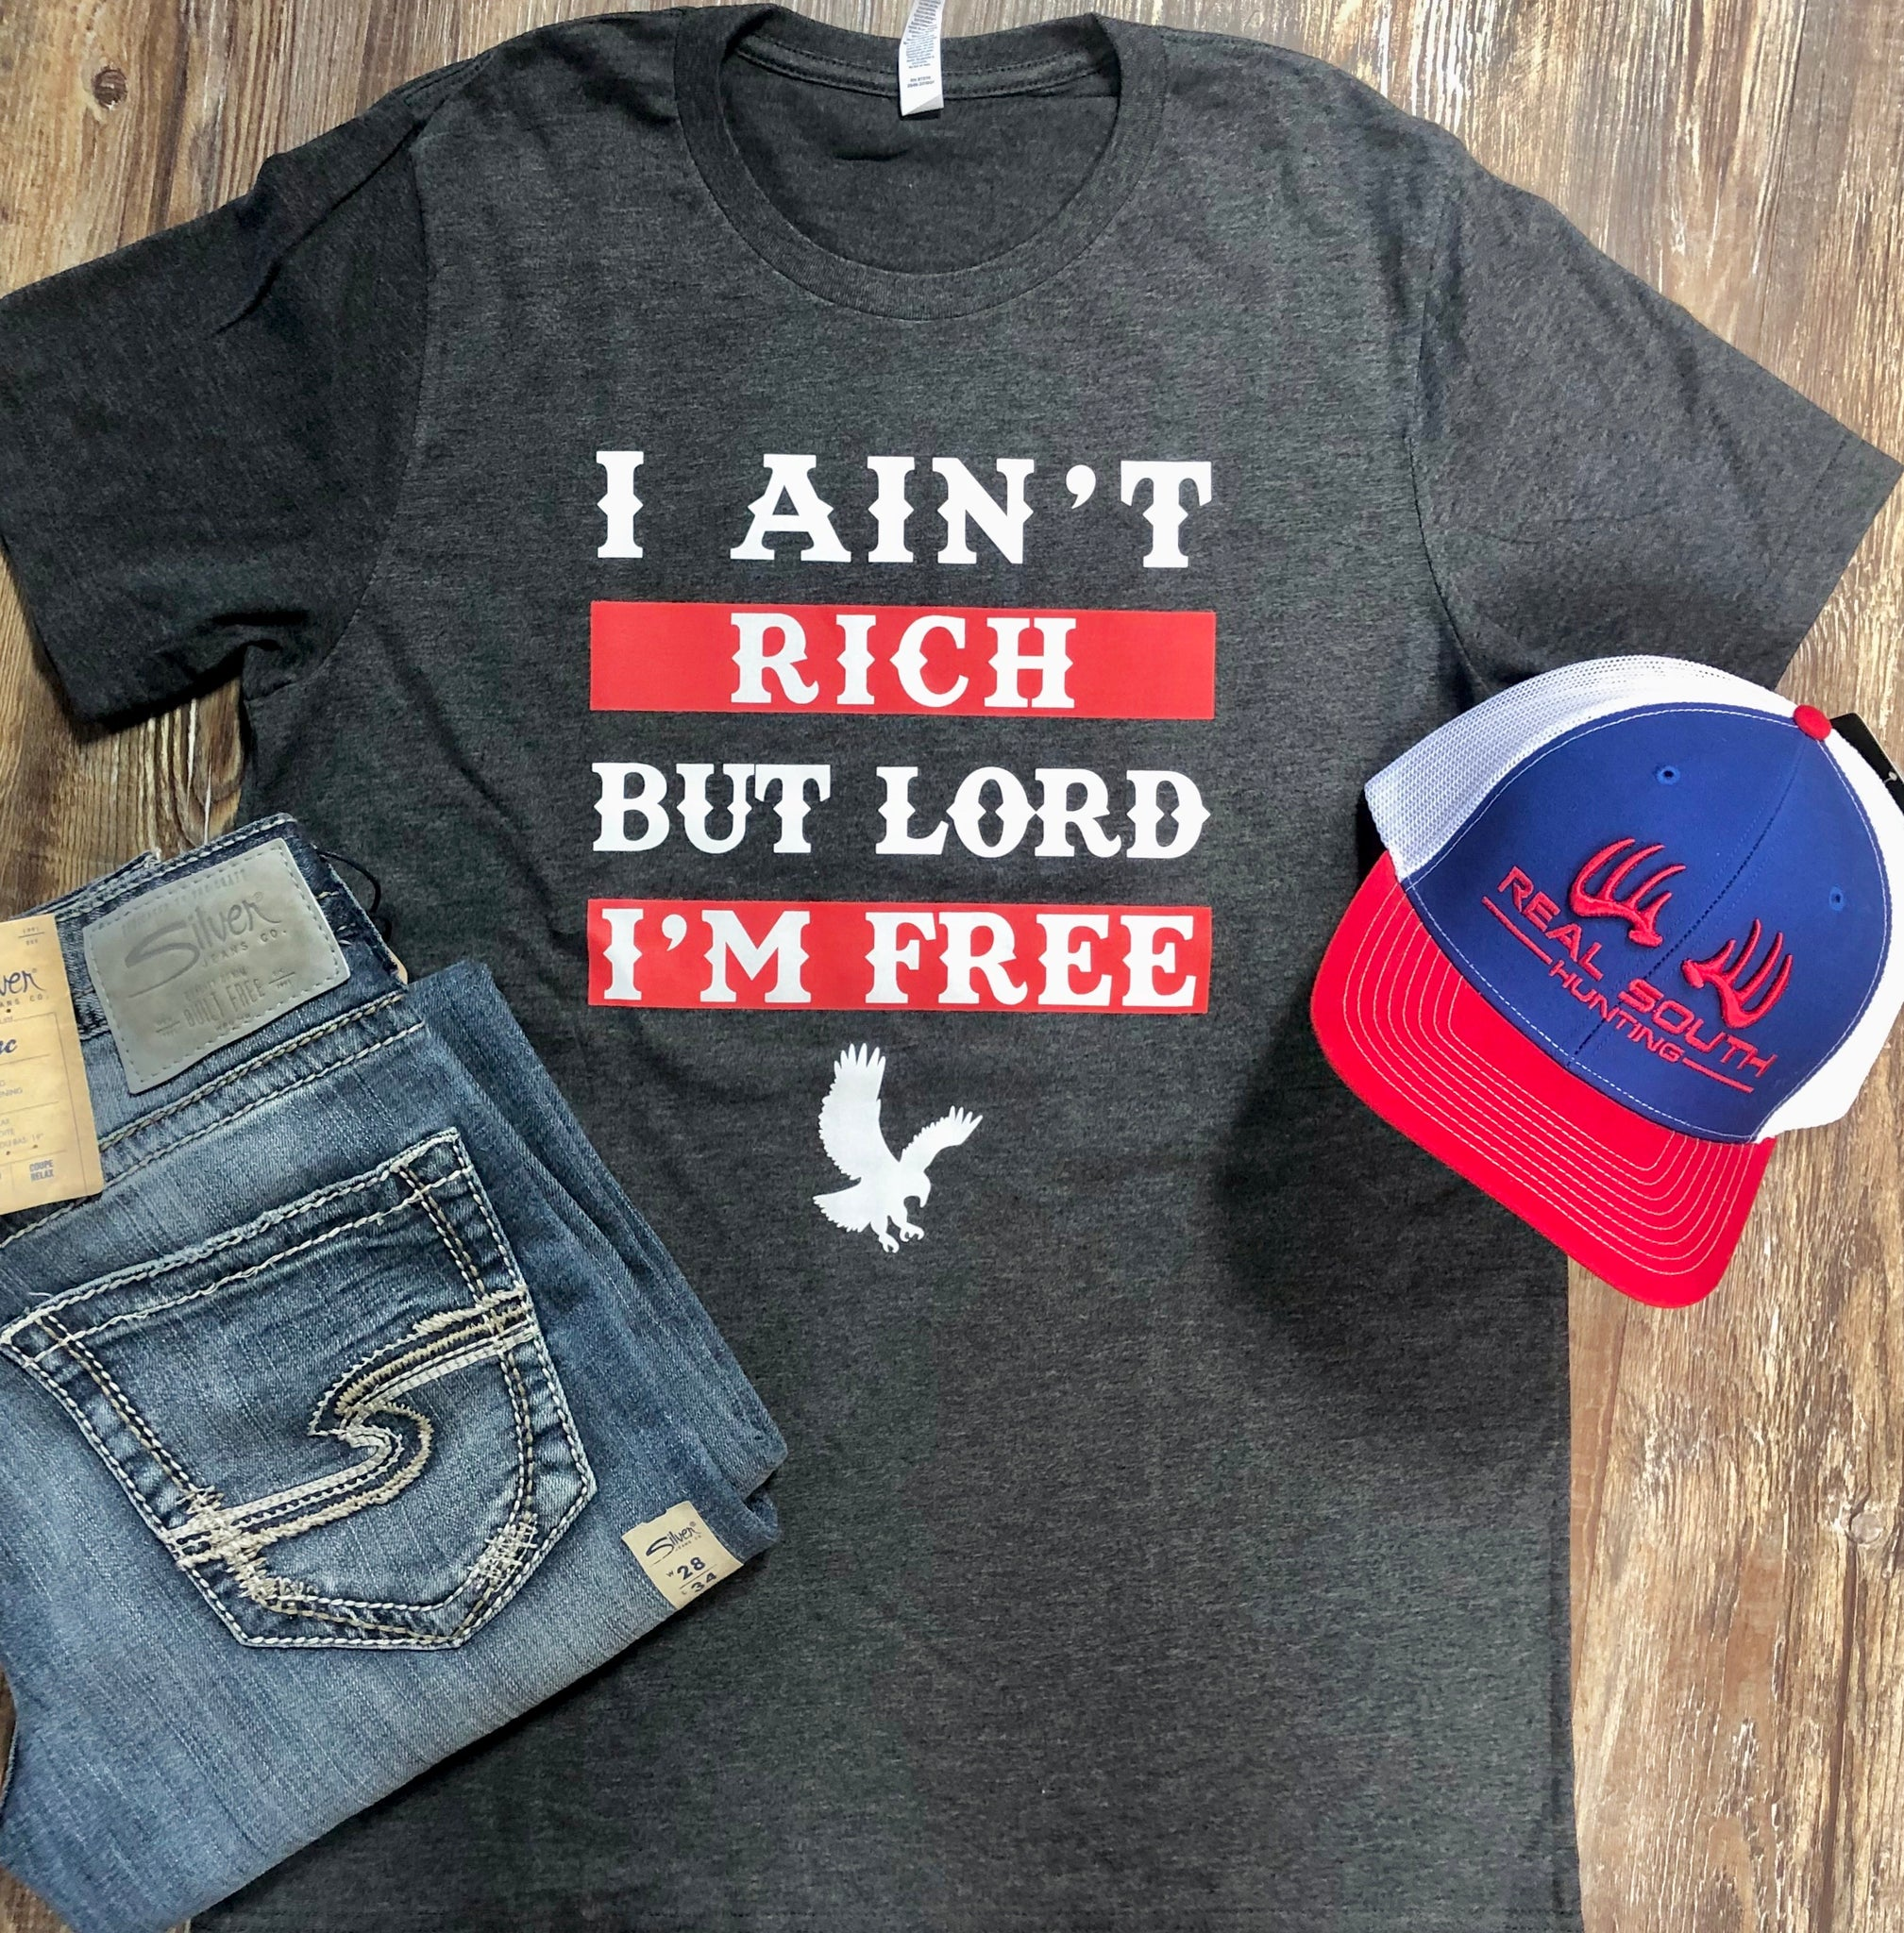 I Ain't Rich But Lord I'm Free Heather Grey Men's Tee Medium - Jessi Jayne Boutique